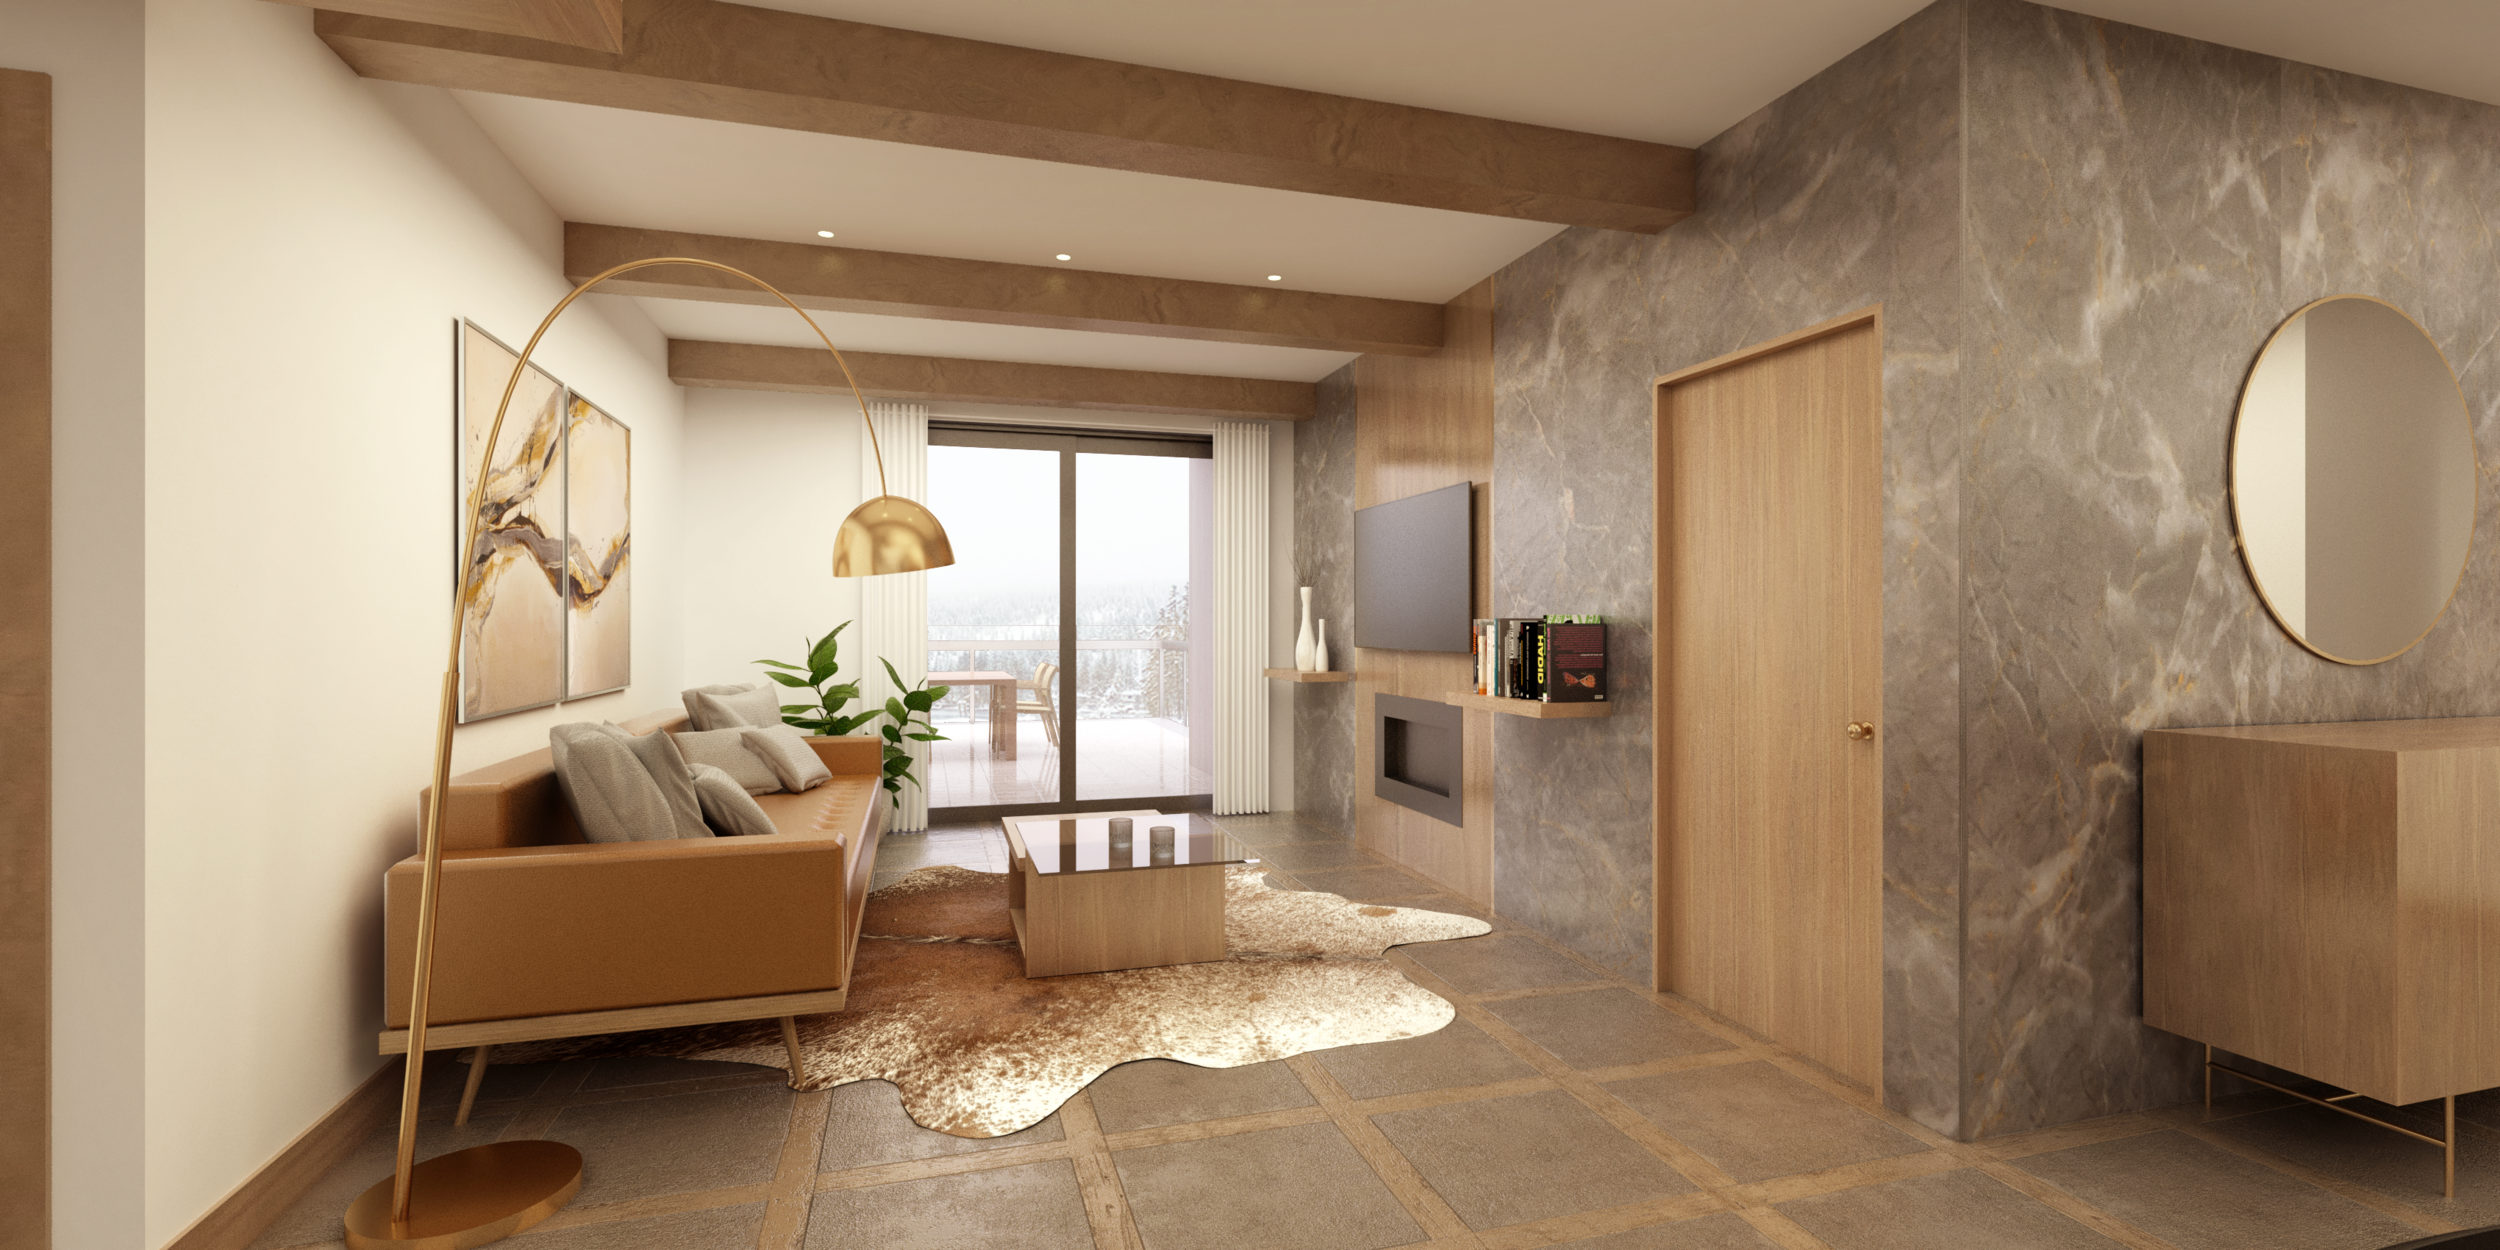 Interior design for residential condominiums at Lake Tahoe - Design & Rendering by BNDL